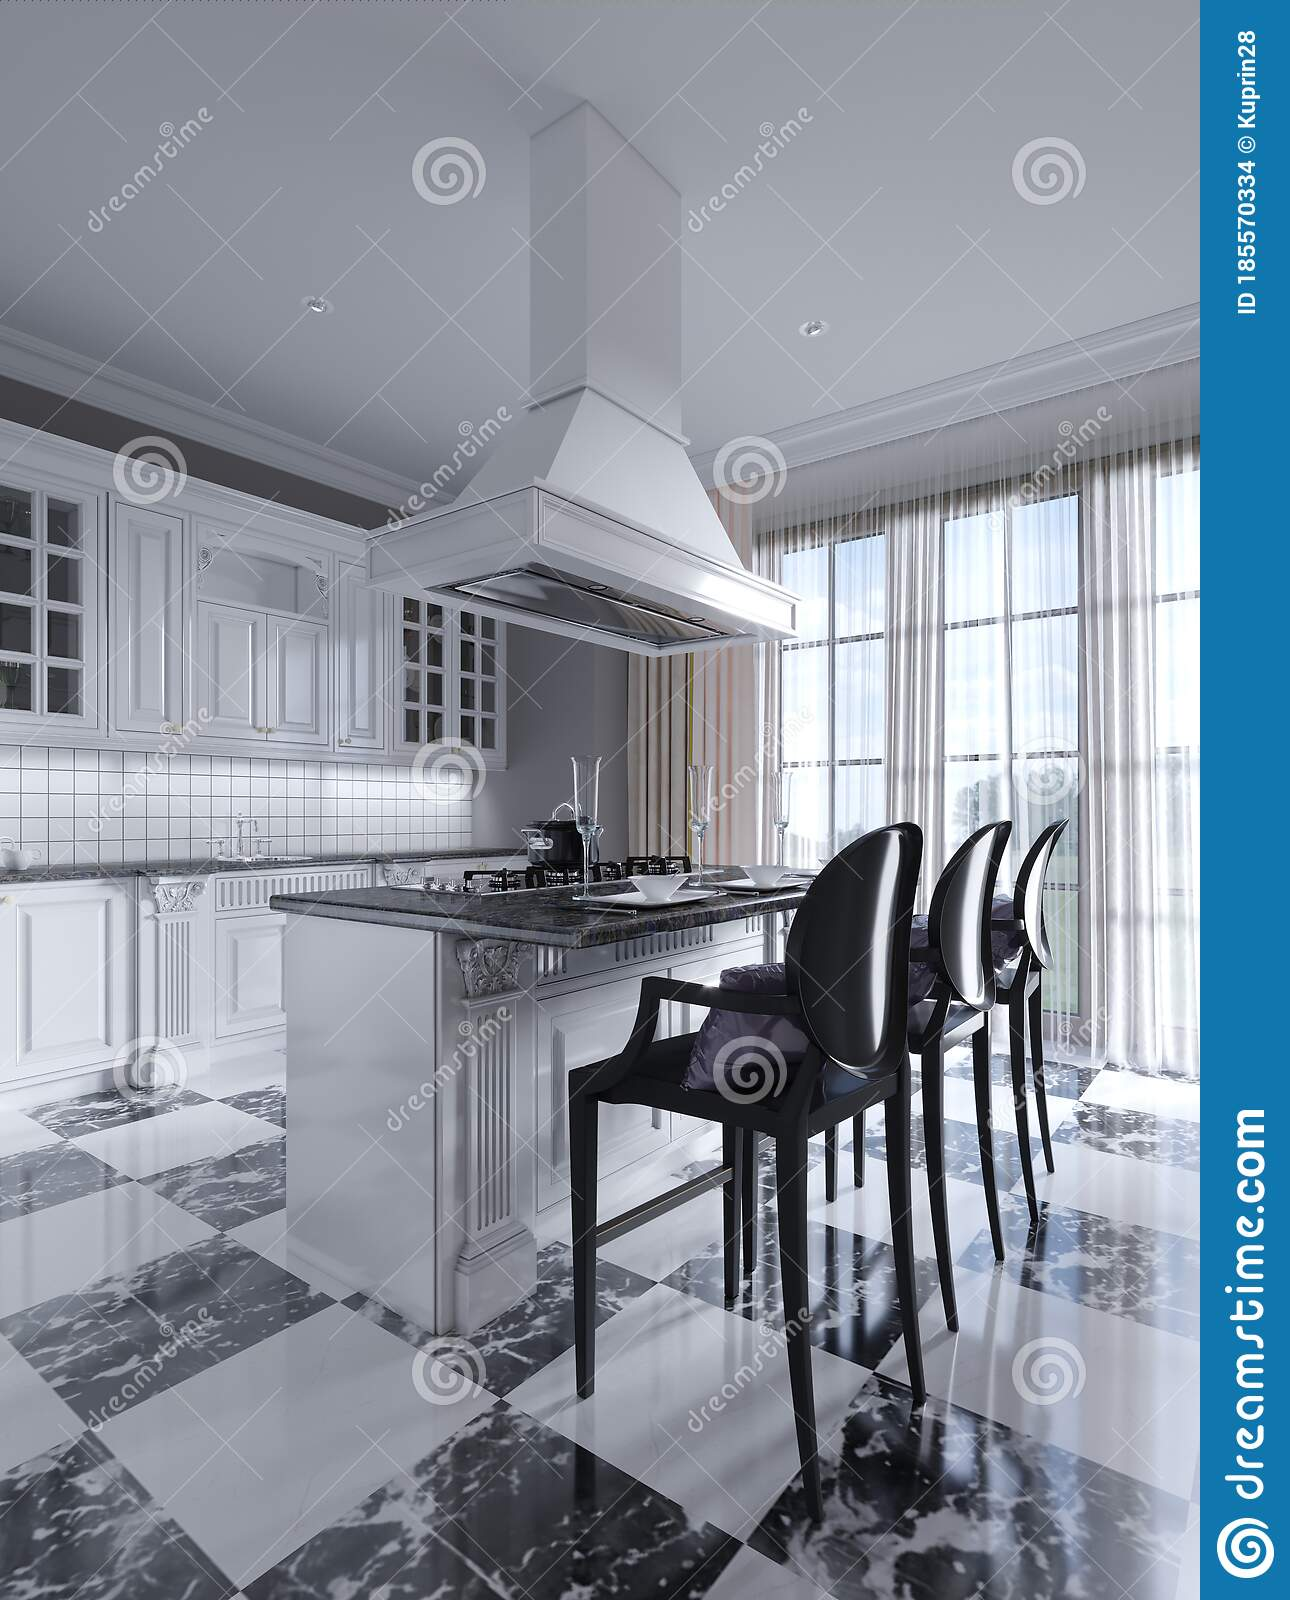 Kitchen Island In Black And White Art Deco With Chess Floor Stock Illustration Of Corner Interior 185570334